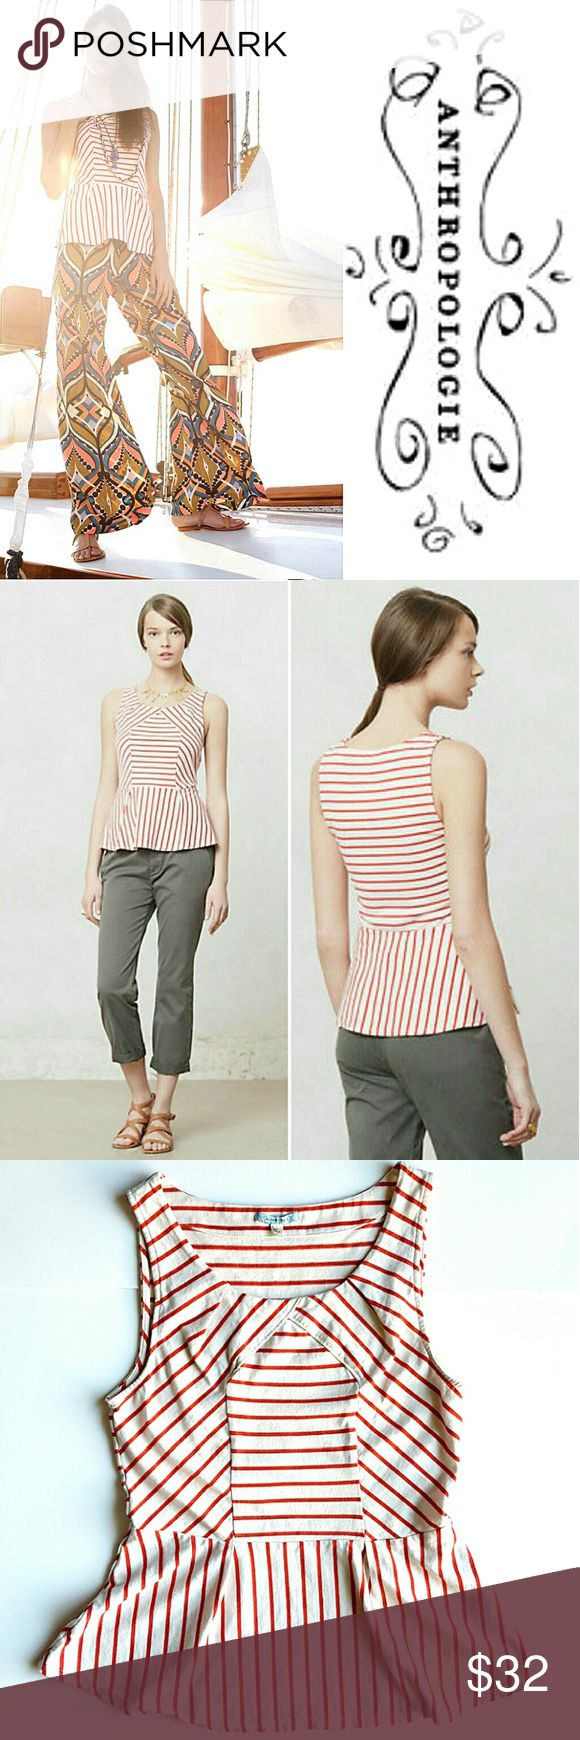 """Slantwise Peplum Top Red and white striped peplum top by LeifNotes. So girly and flattering, perfect for the warm weather.  16"""" armpit to armpit,  23"""" long shoulder to bottom hem.  Gently used, in great condition. Anthropologie Tops Blouses"""